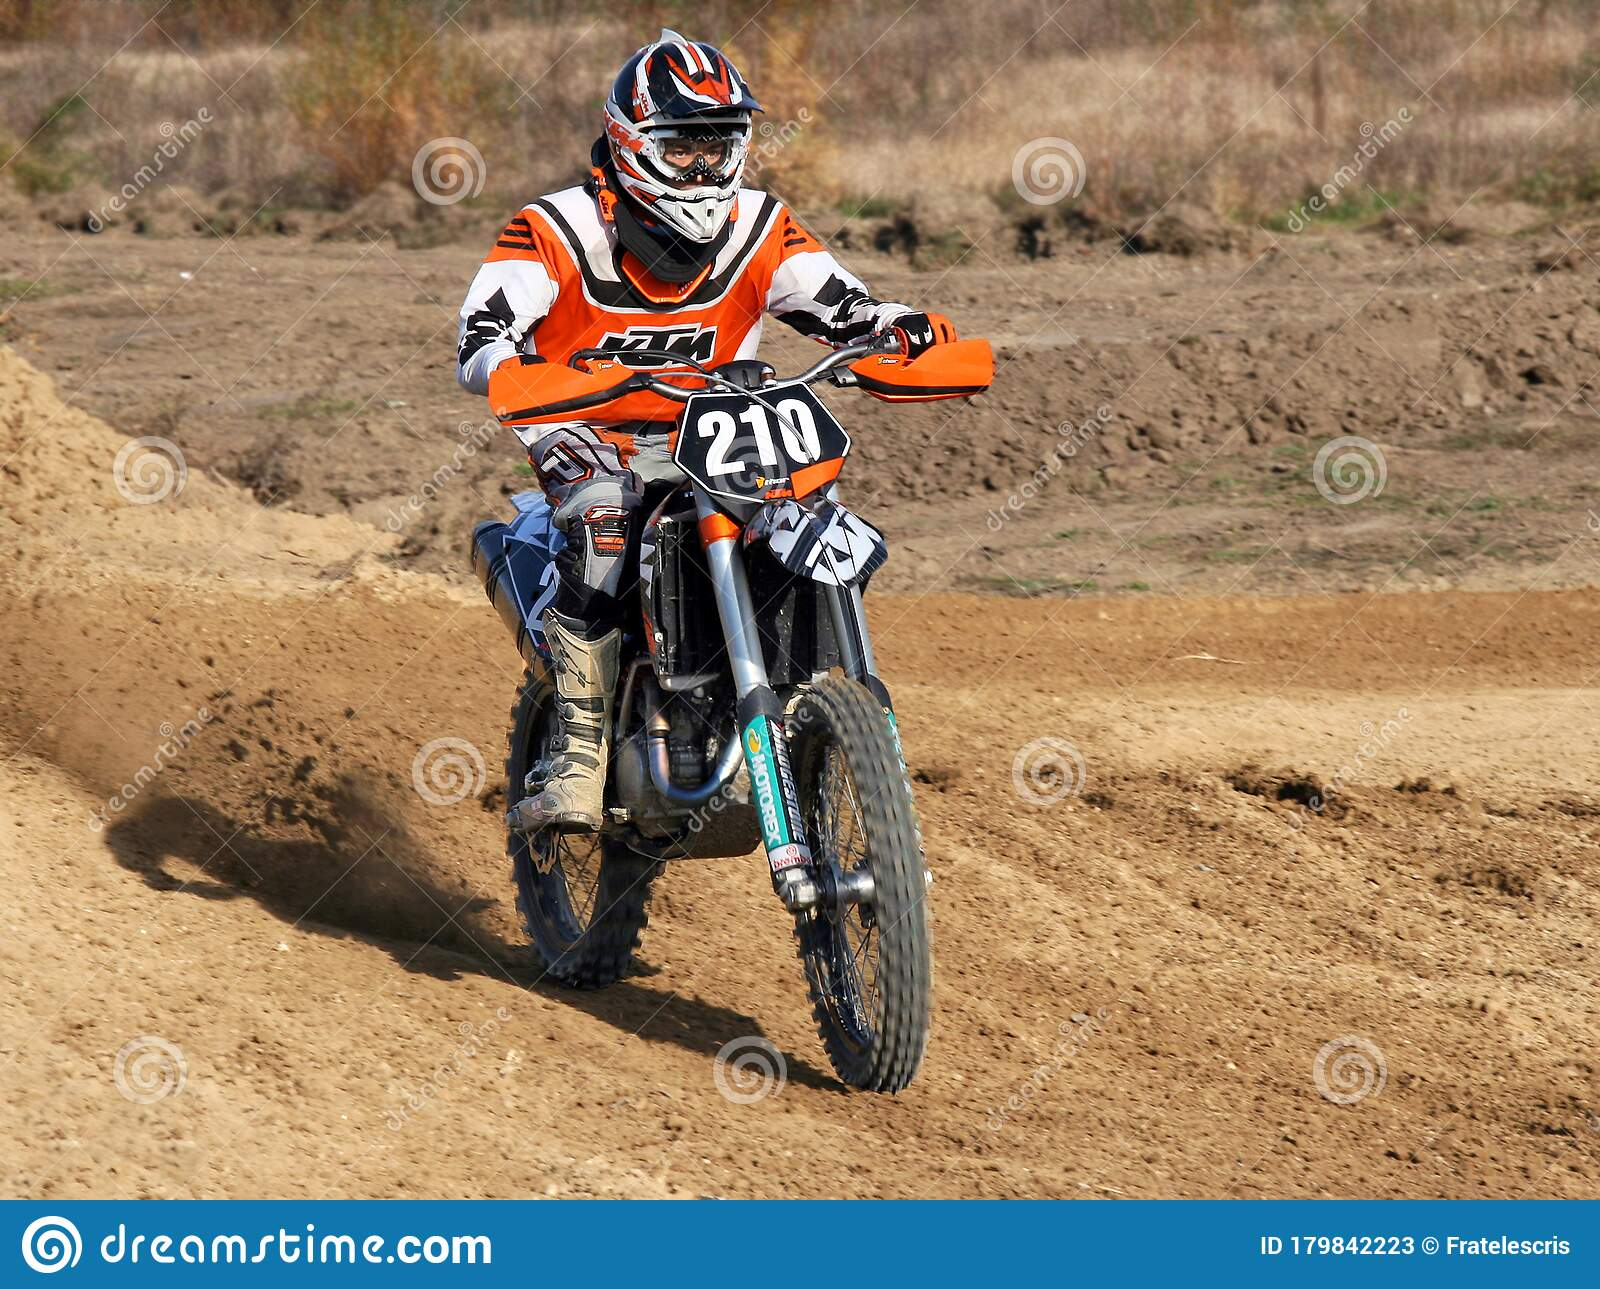 Motorcyclist Racing On Dirt Bike Off Road Editorial Stock Photo Image Of Exhaust Competition 179842223